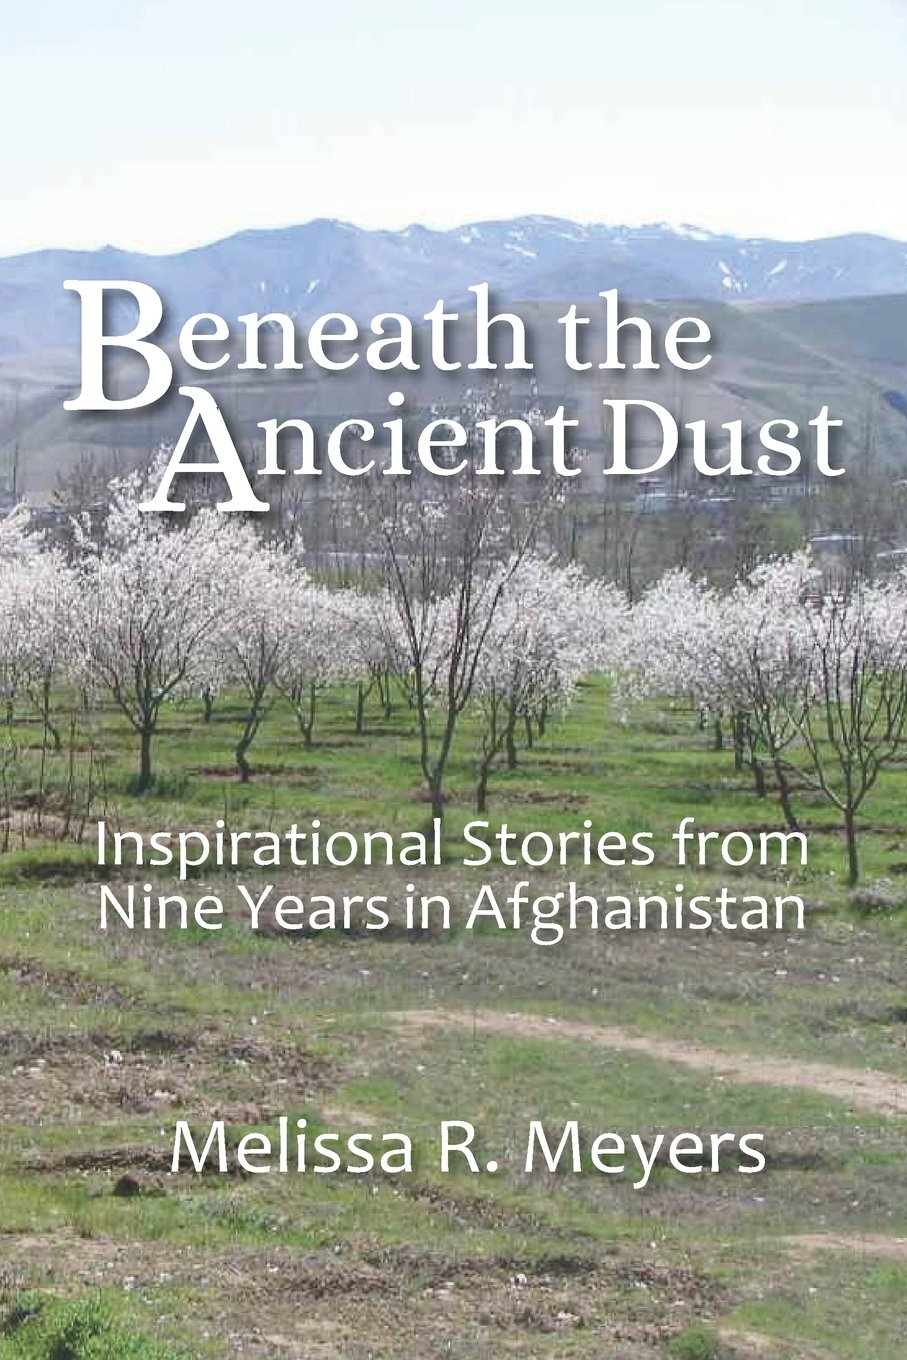 Image result for beneath the ancient dust melissa meyers